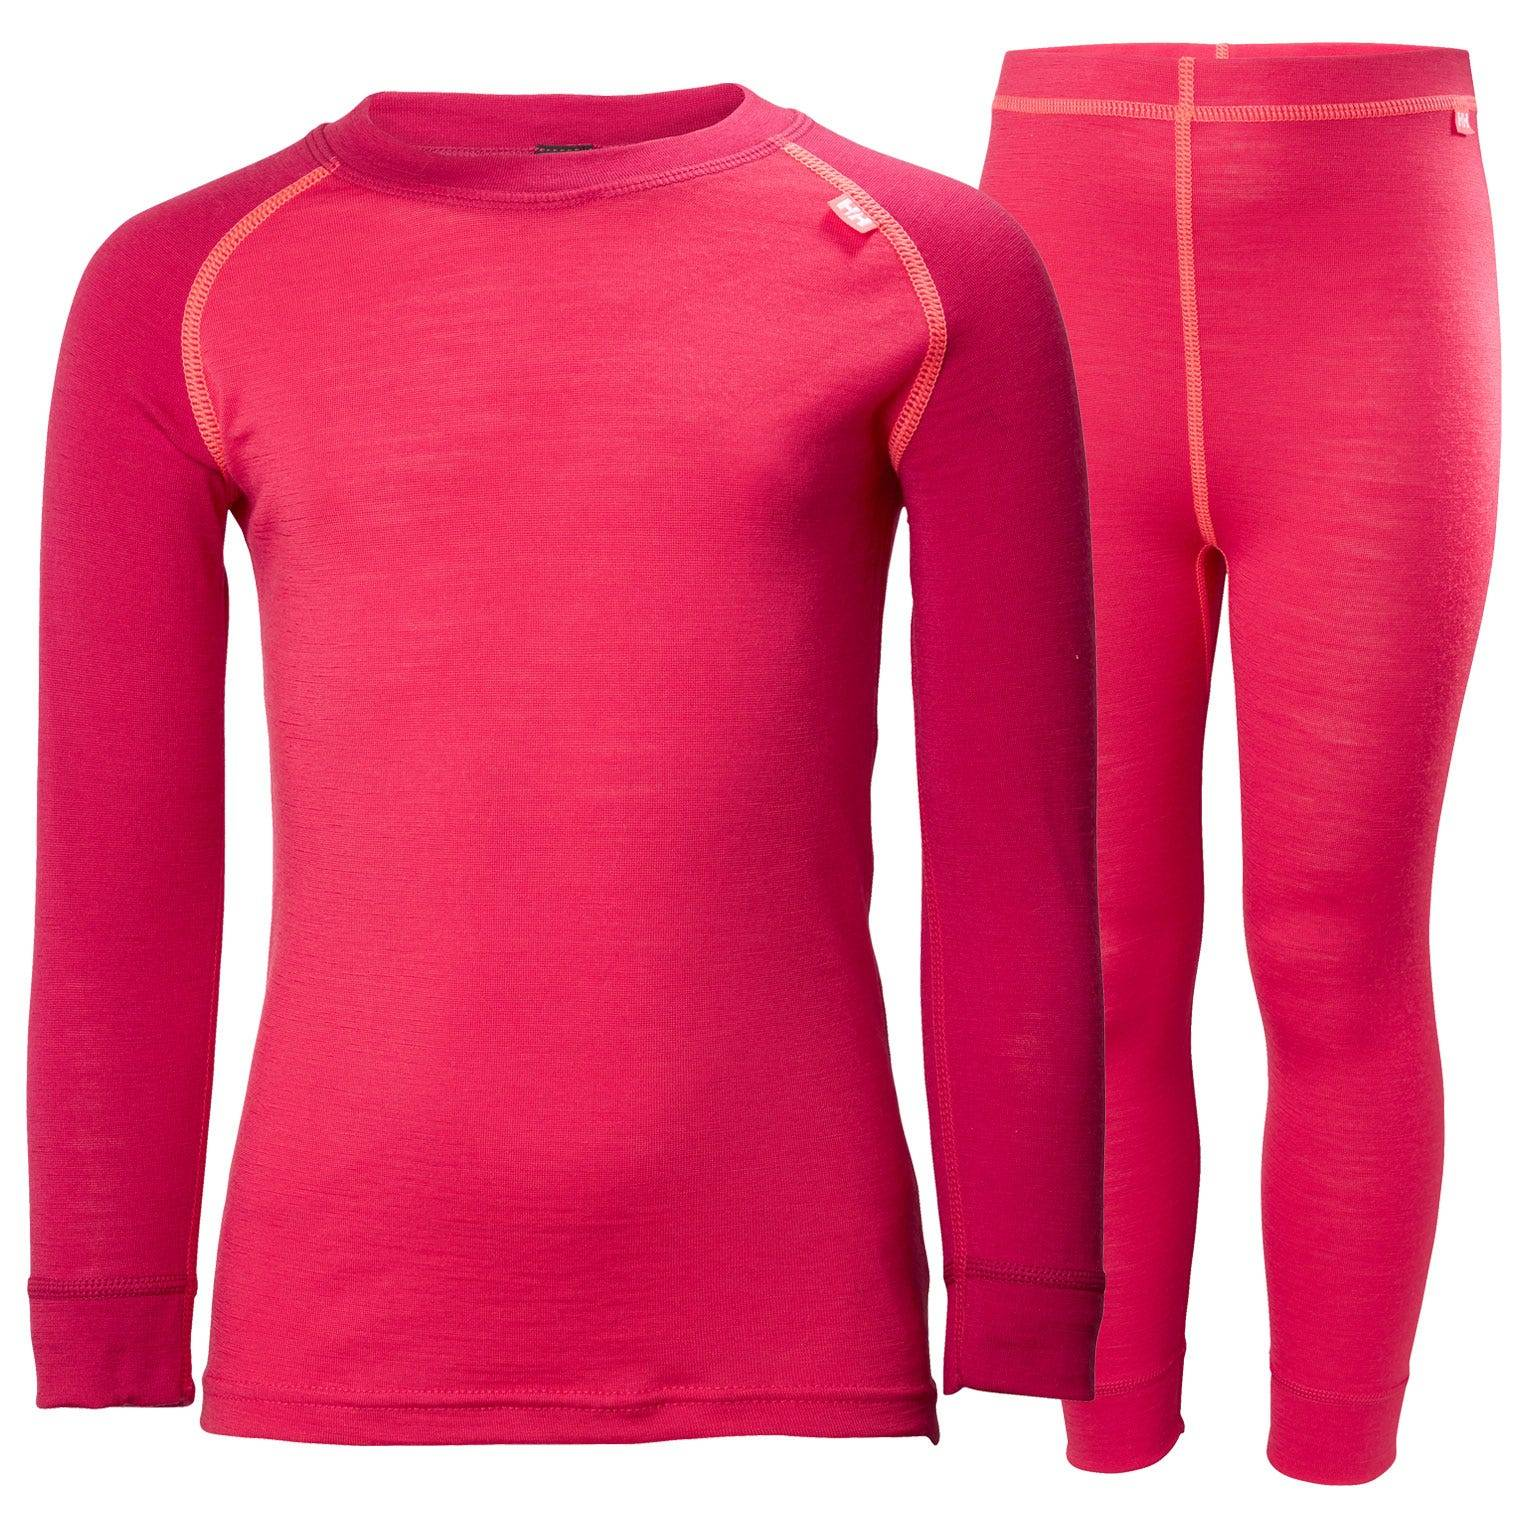 Helly Hansen Kids Merino Mid Set Baselayer Pink 86/1